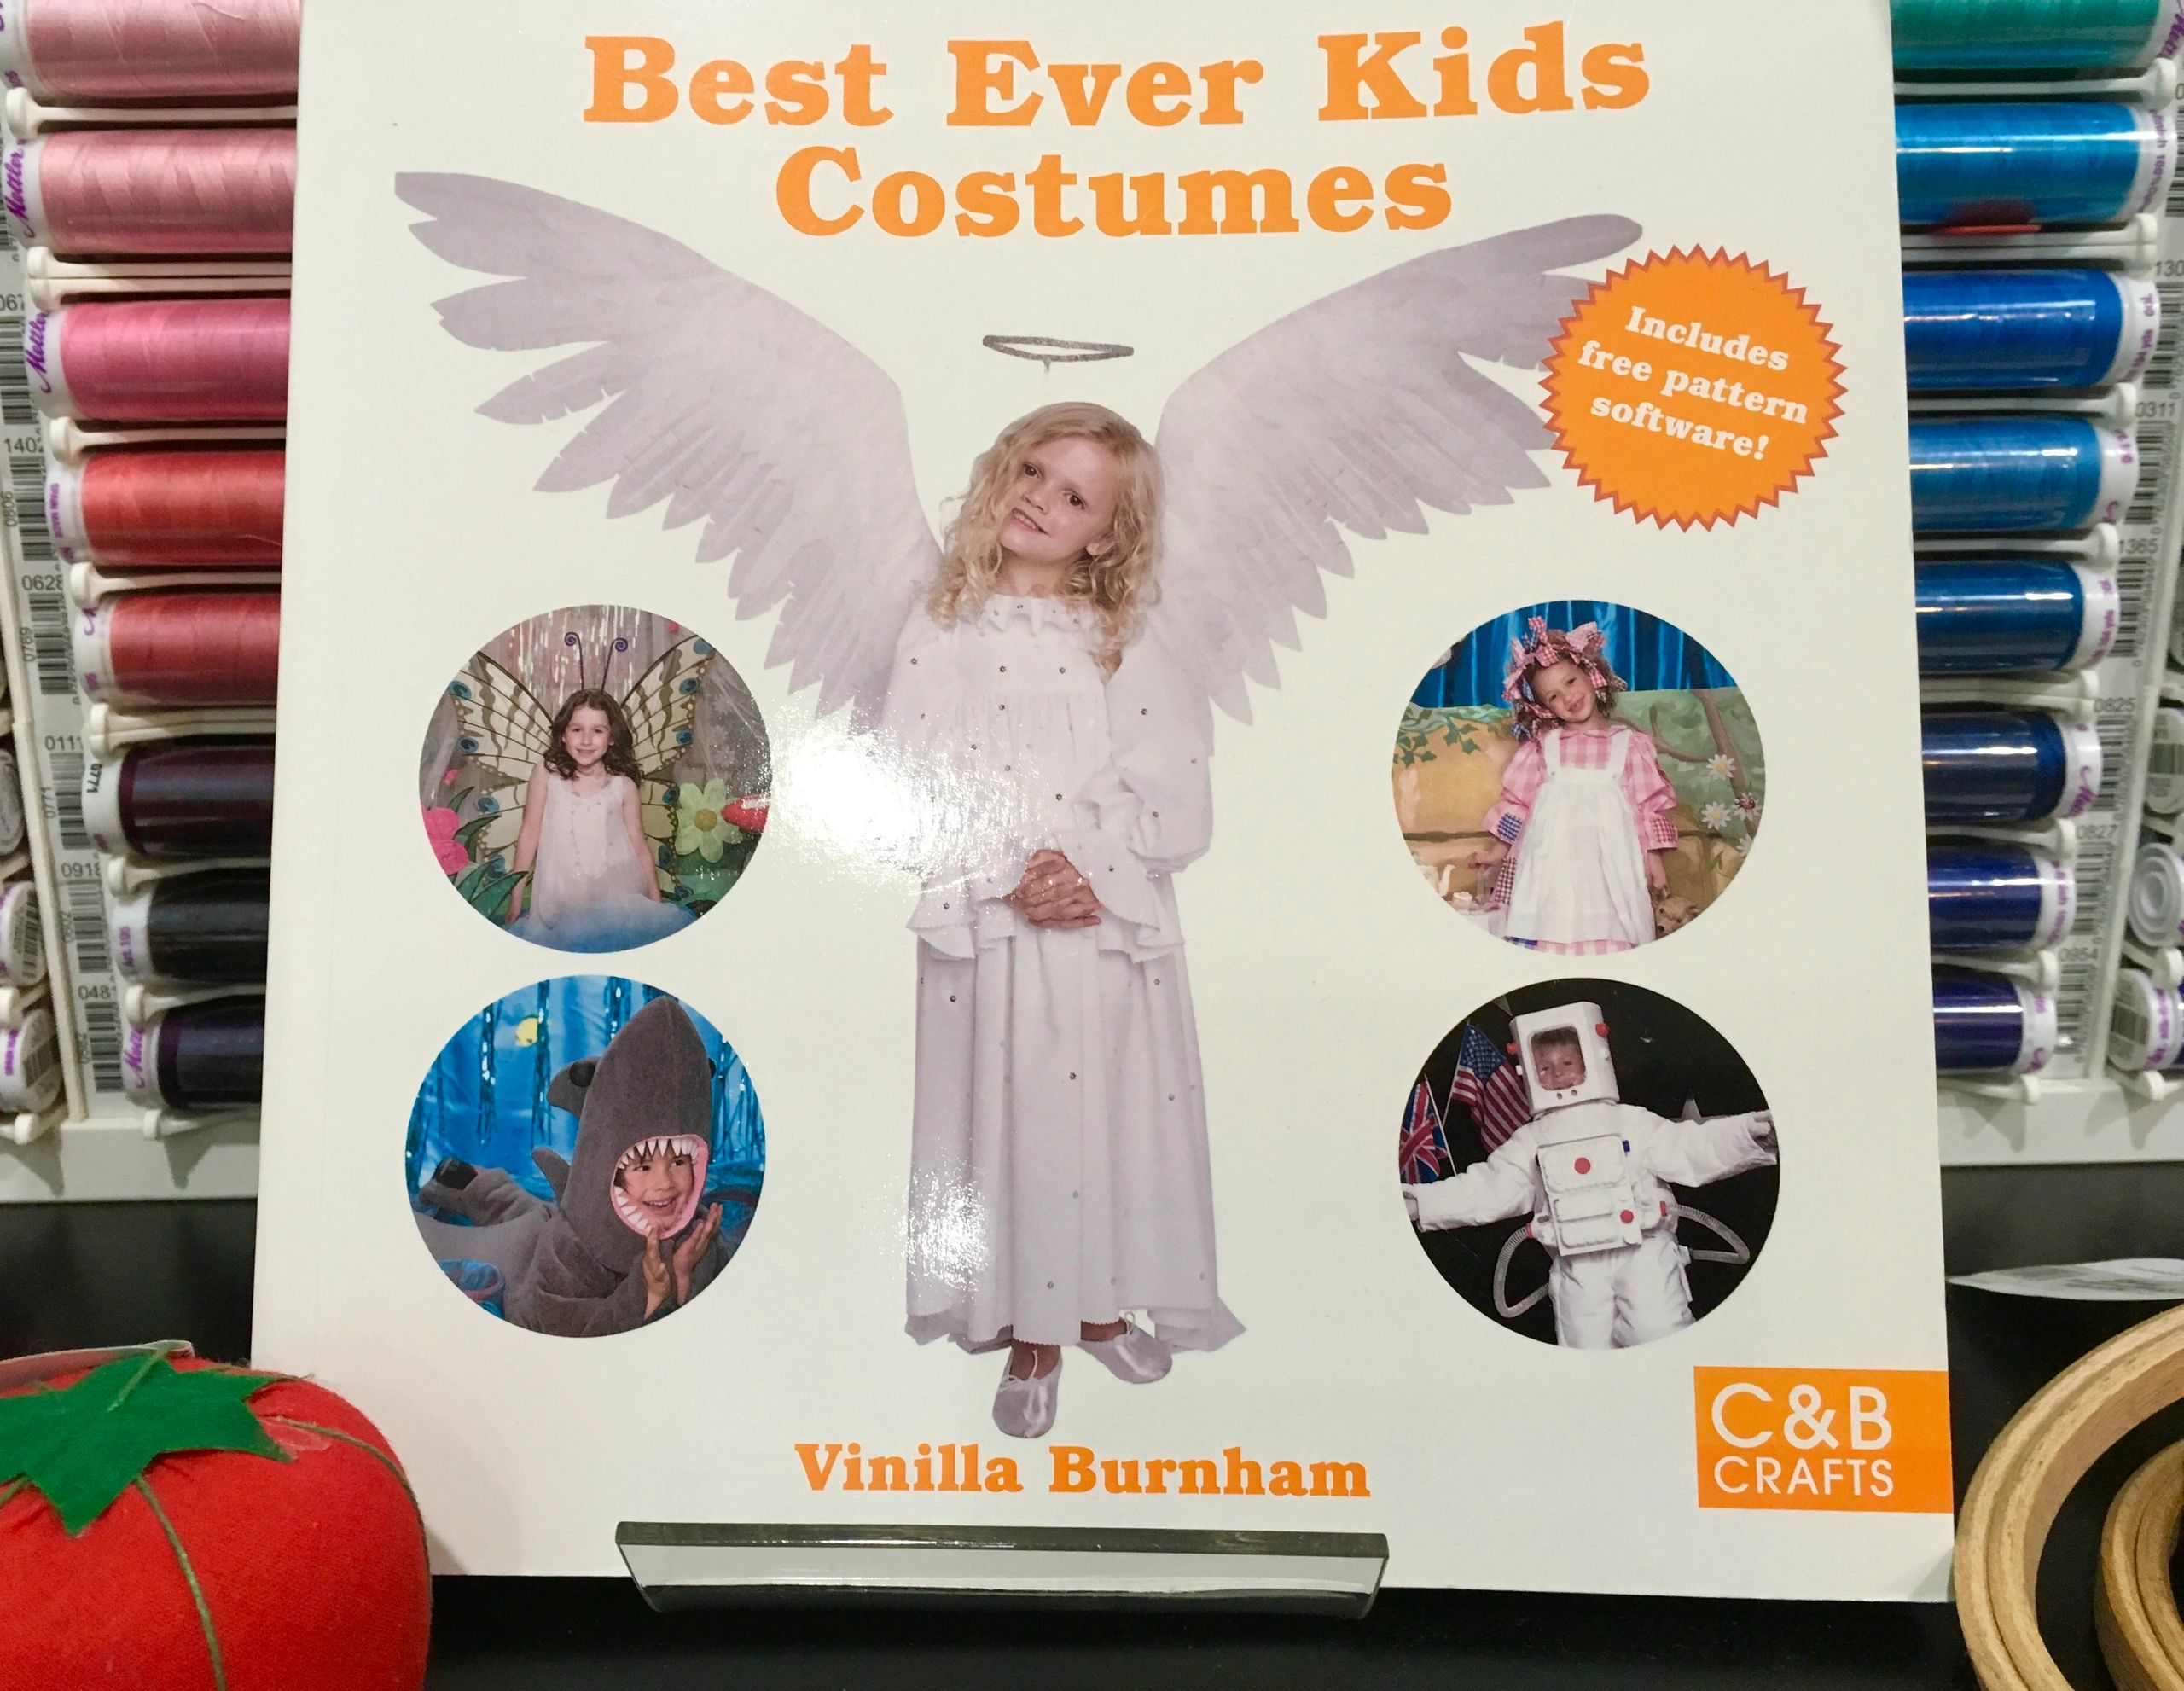 Best Ever Kids Costumes Book